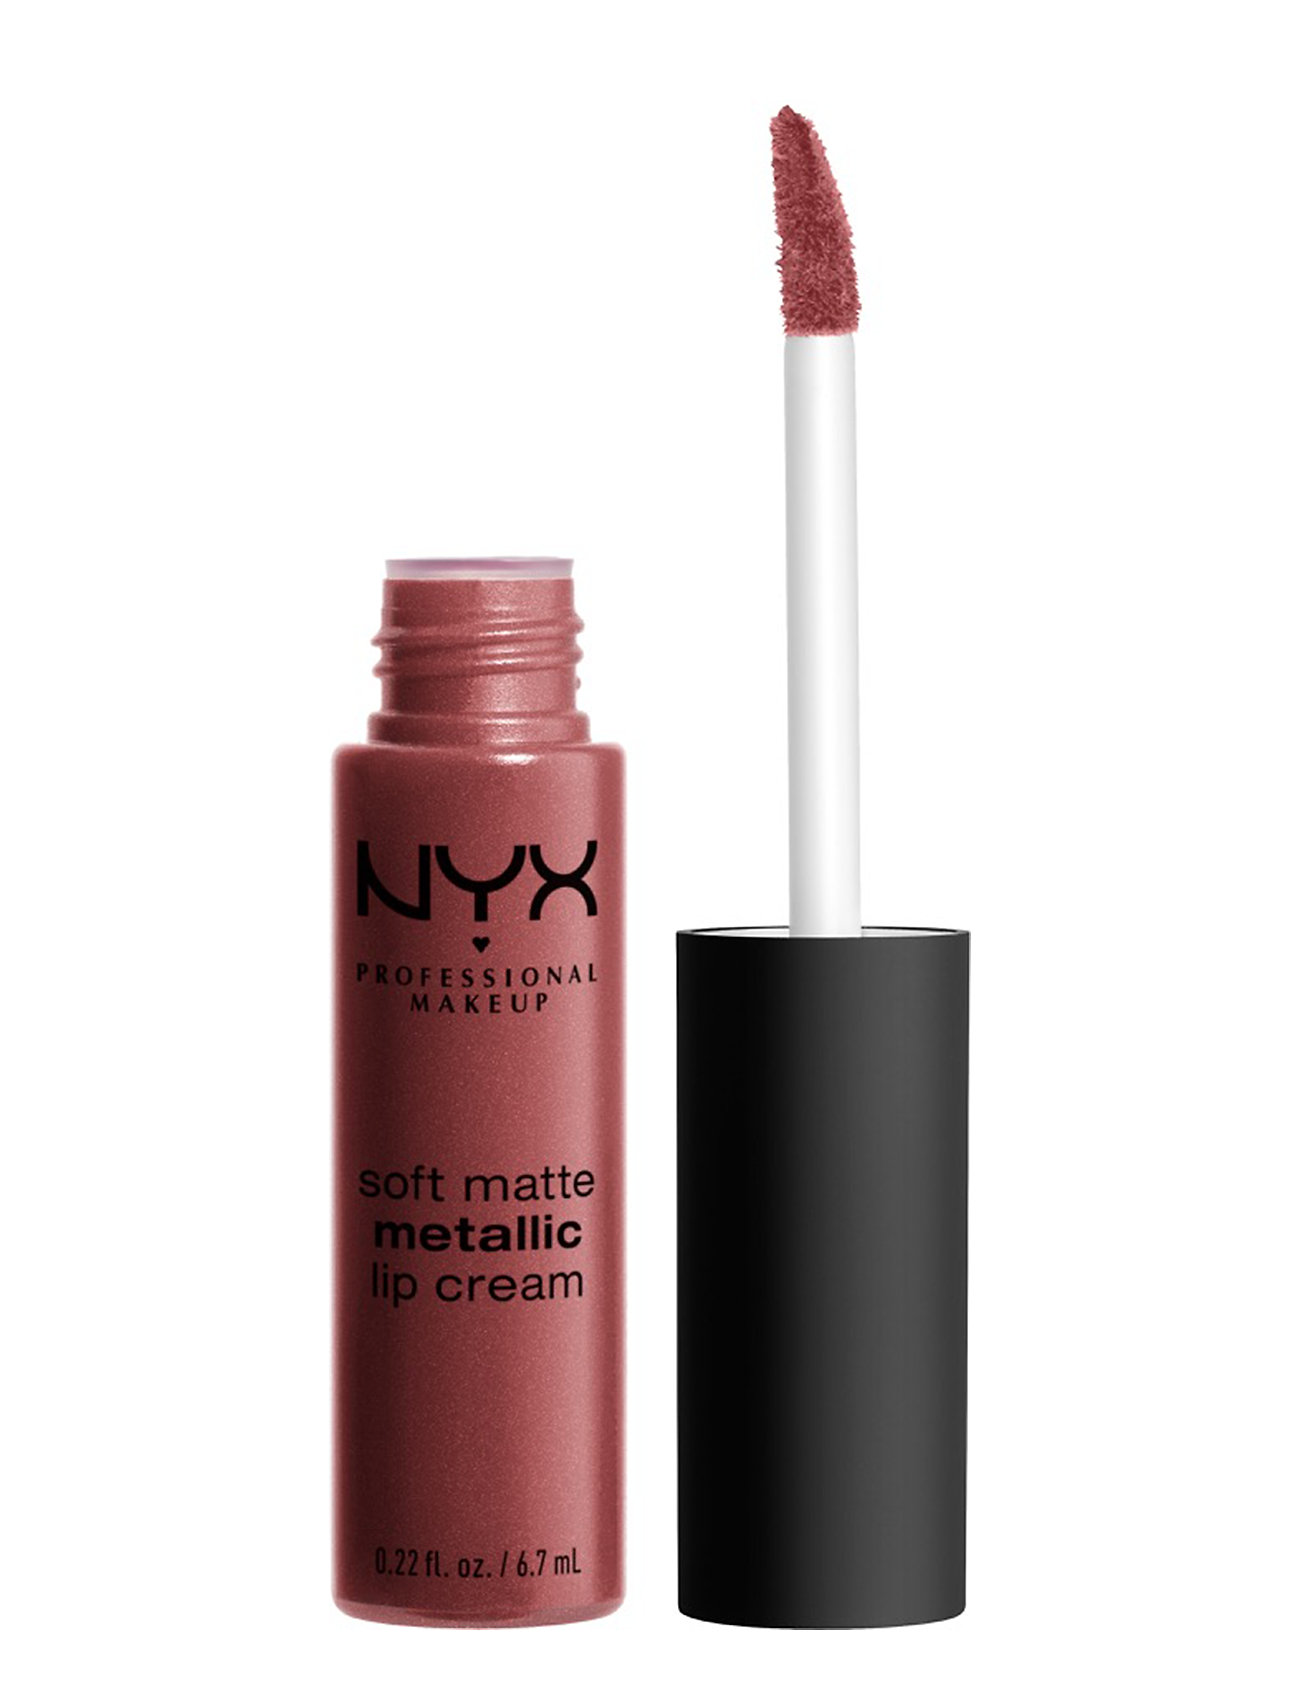 Image of Soft Matte Metallic Lip Cream Læbestift Makeup Rød NYX PROFESSIONAL MAKEUP (3158632771)